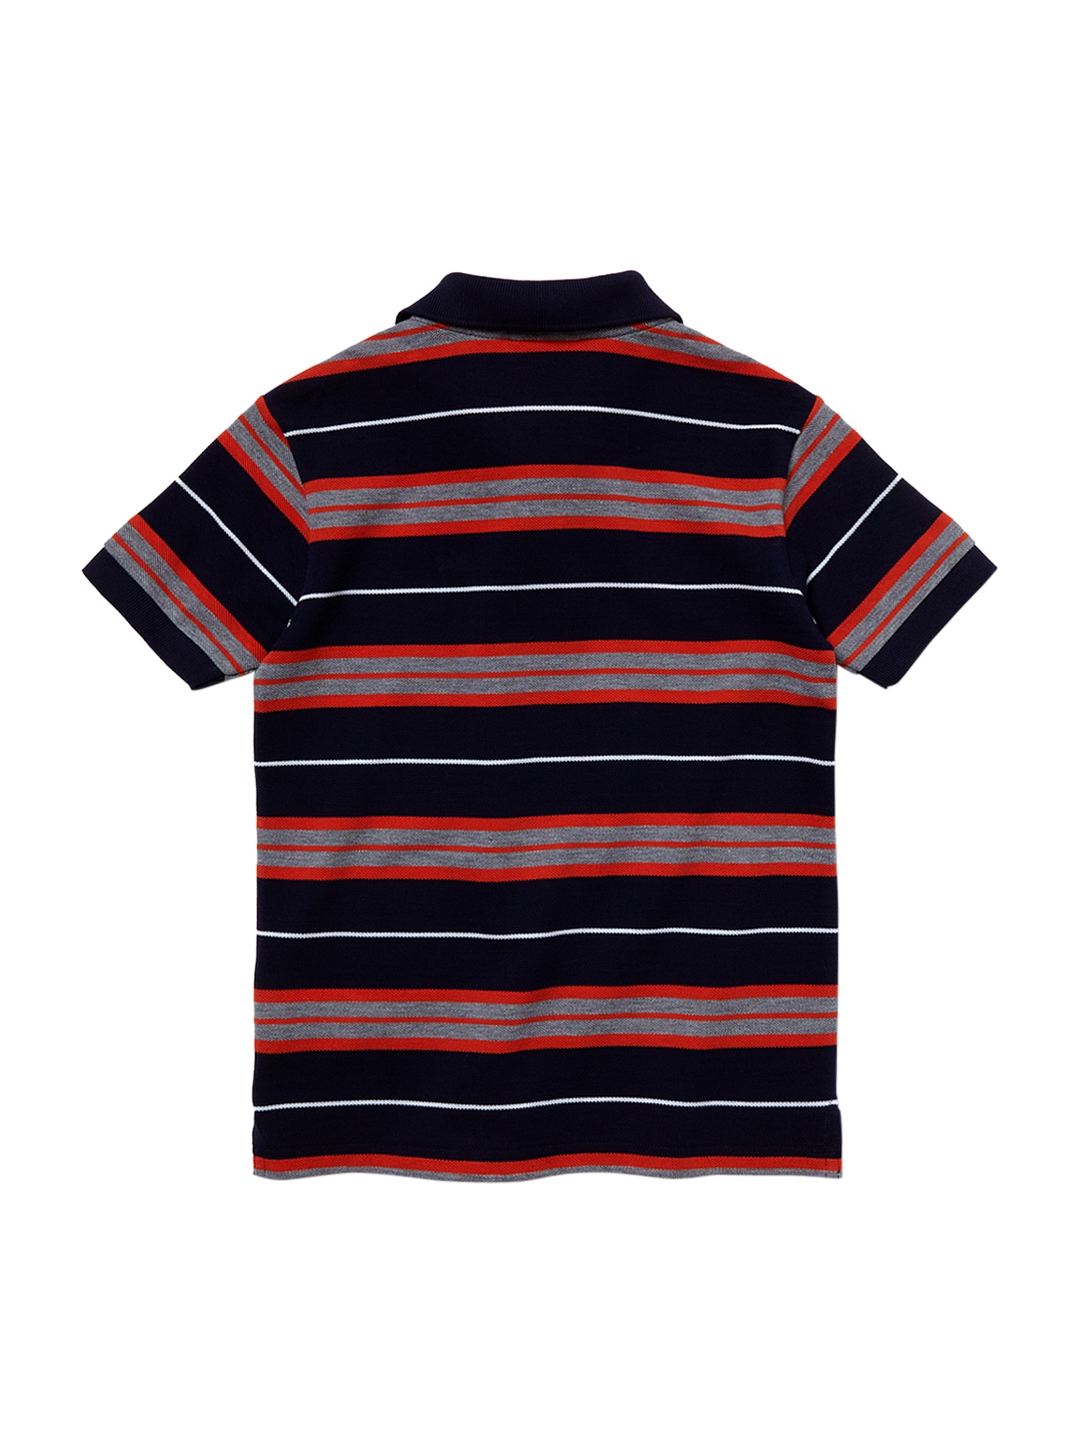 23c7d26292d3 Buy Lacoste Boys Navy Blue Striped Polo Collar T Shirt - Tshirts for ...